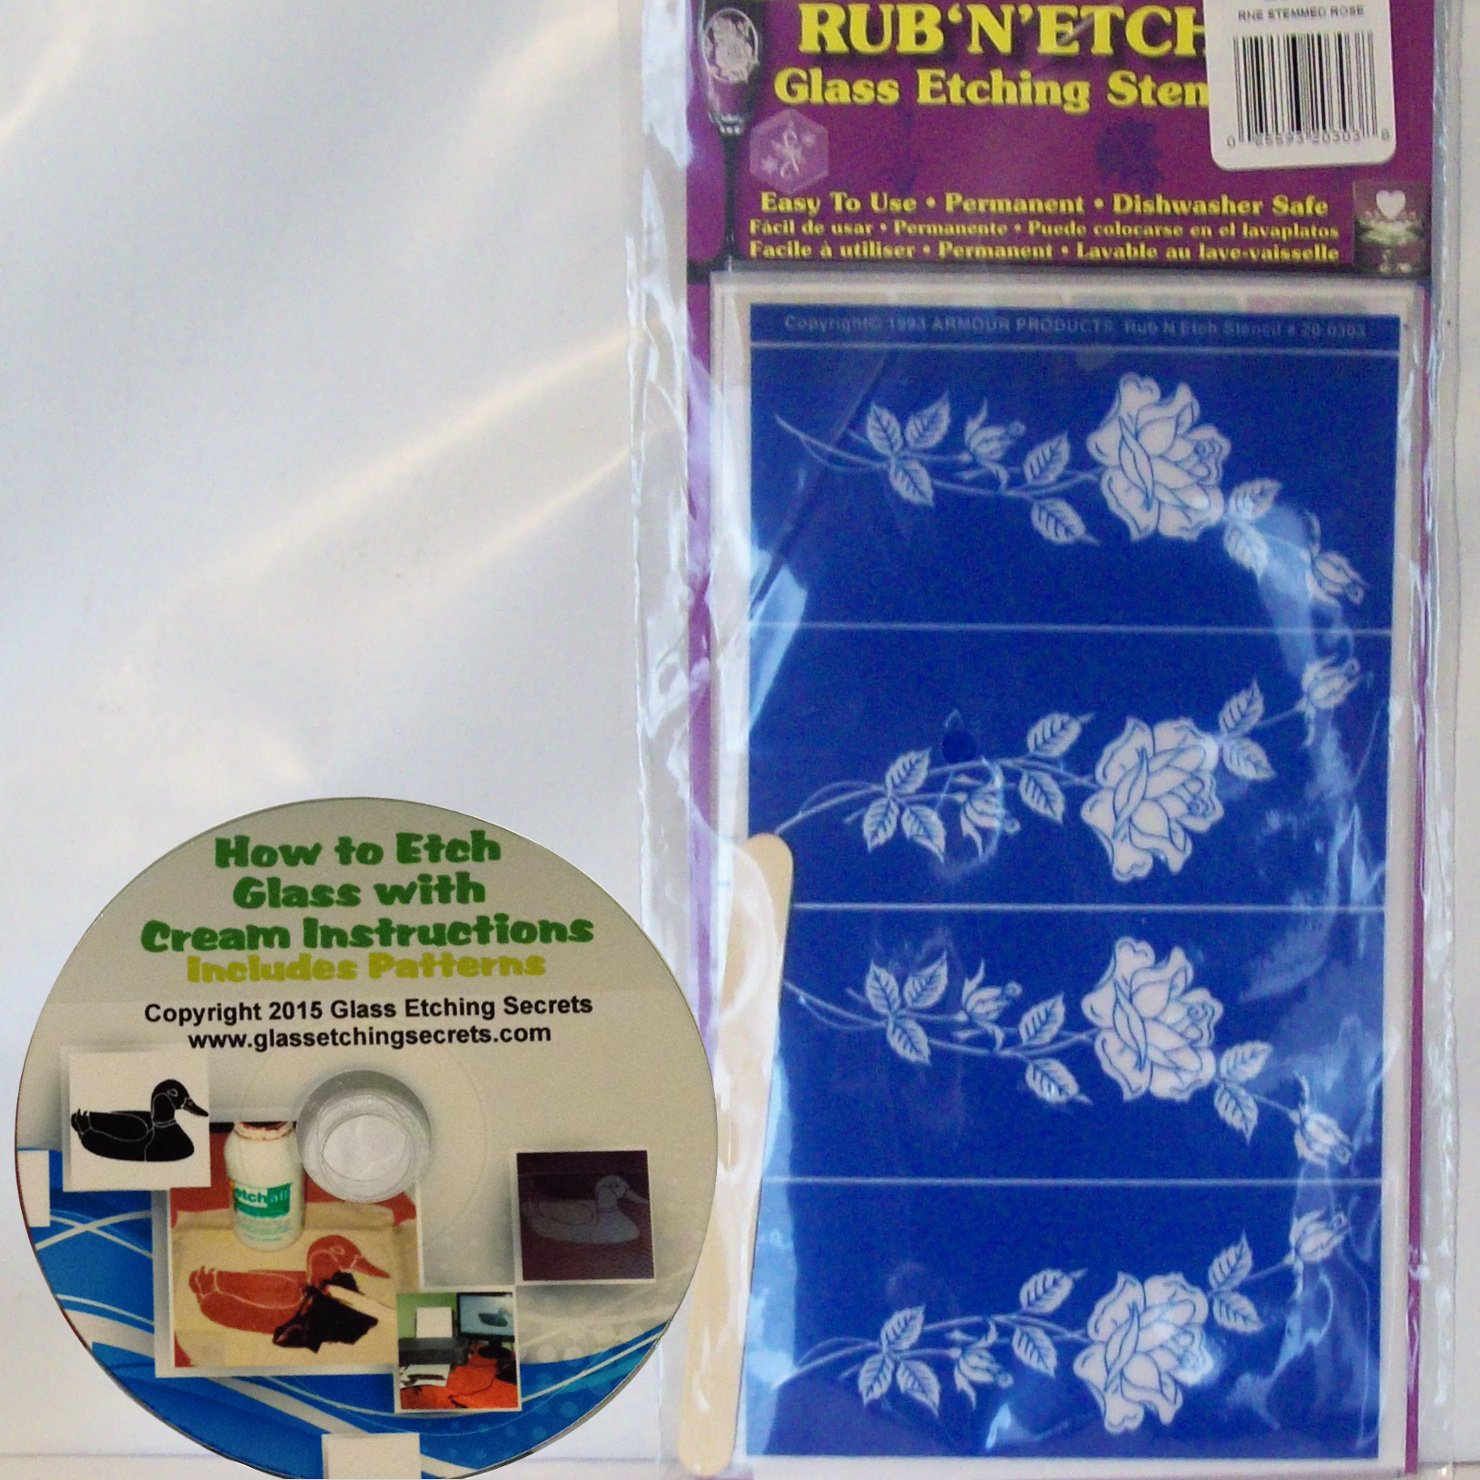 Buy Roses Glass Etching Stencil, Rub N Etch + Free How to